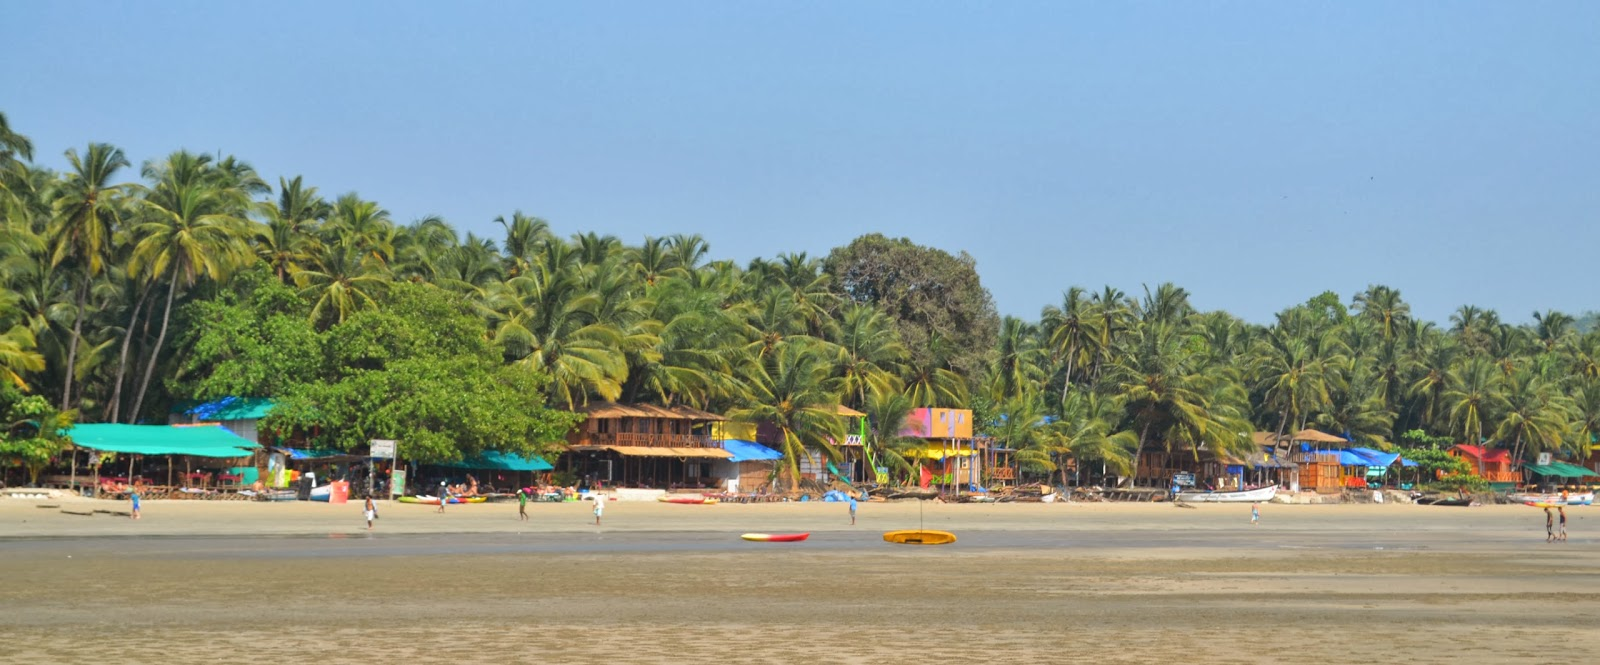 palolem beach in goa